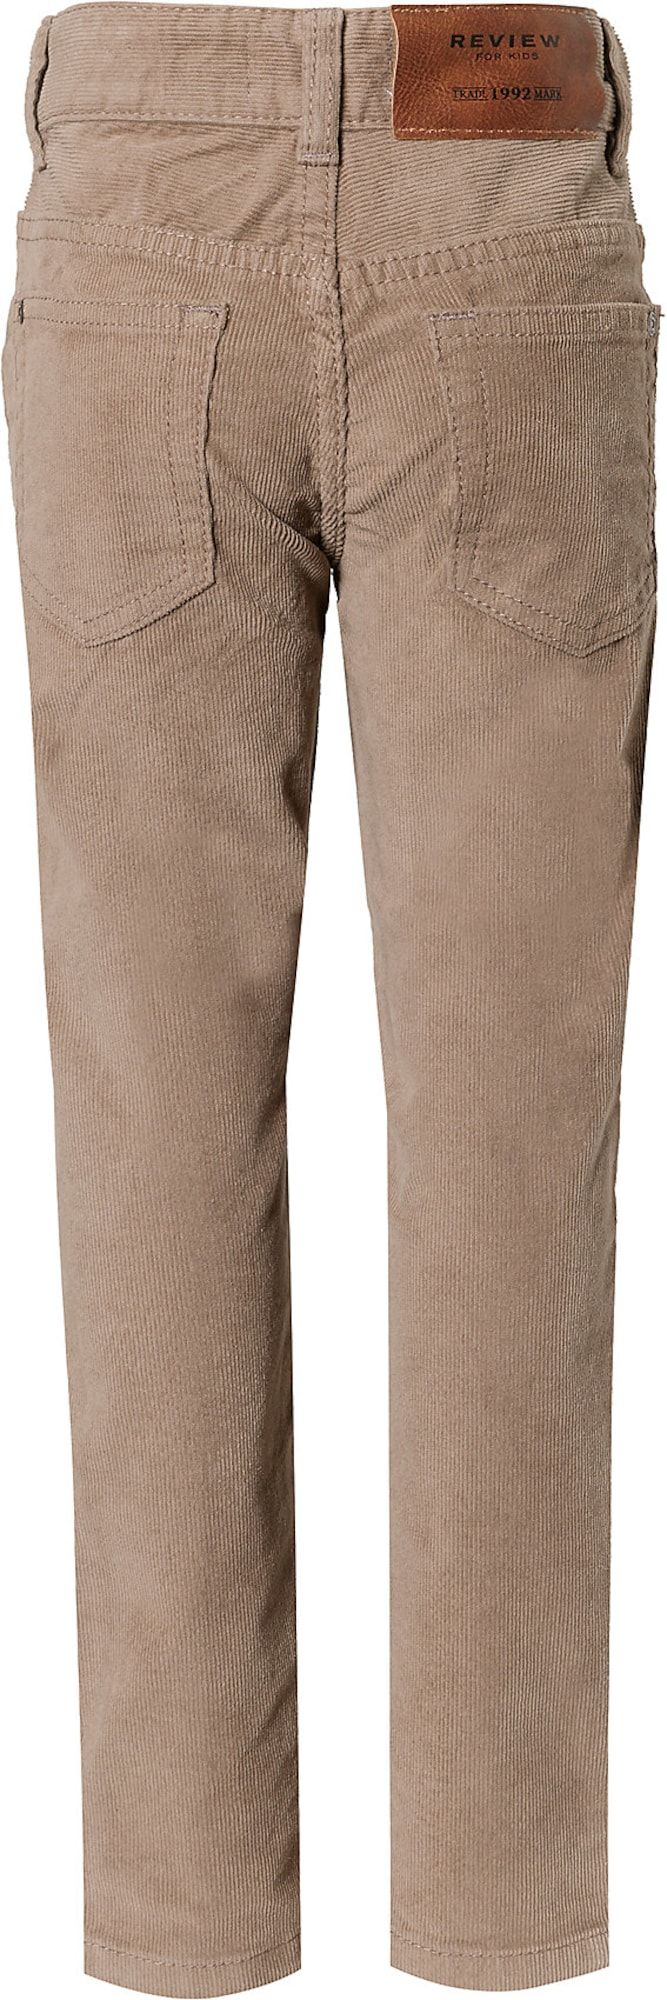 REVIEW FOR KIDS pants boys, Camel, size 116